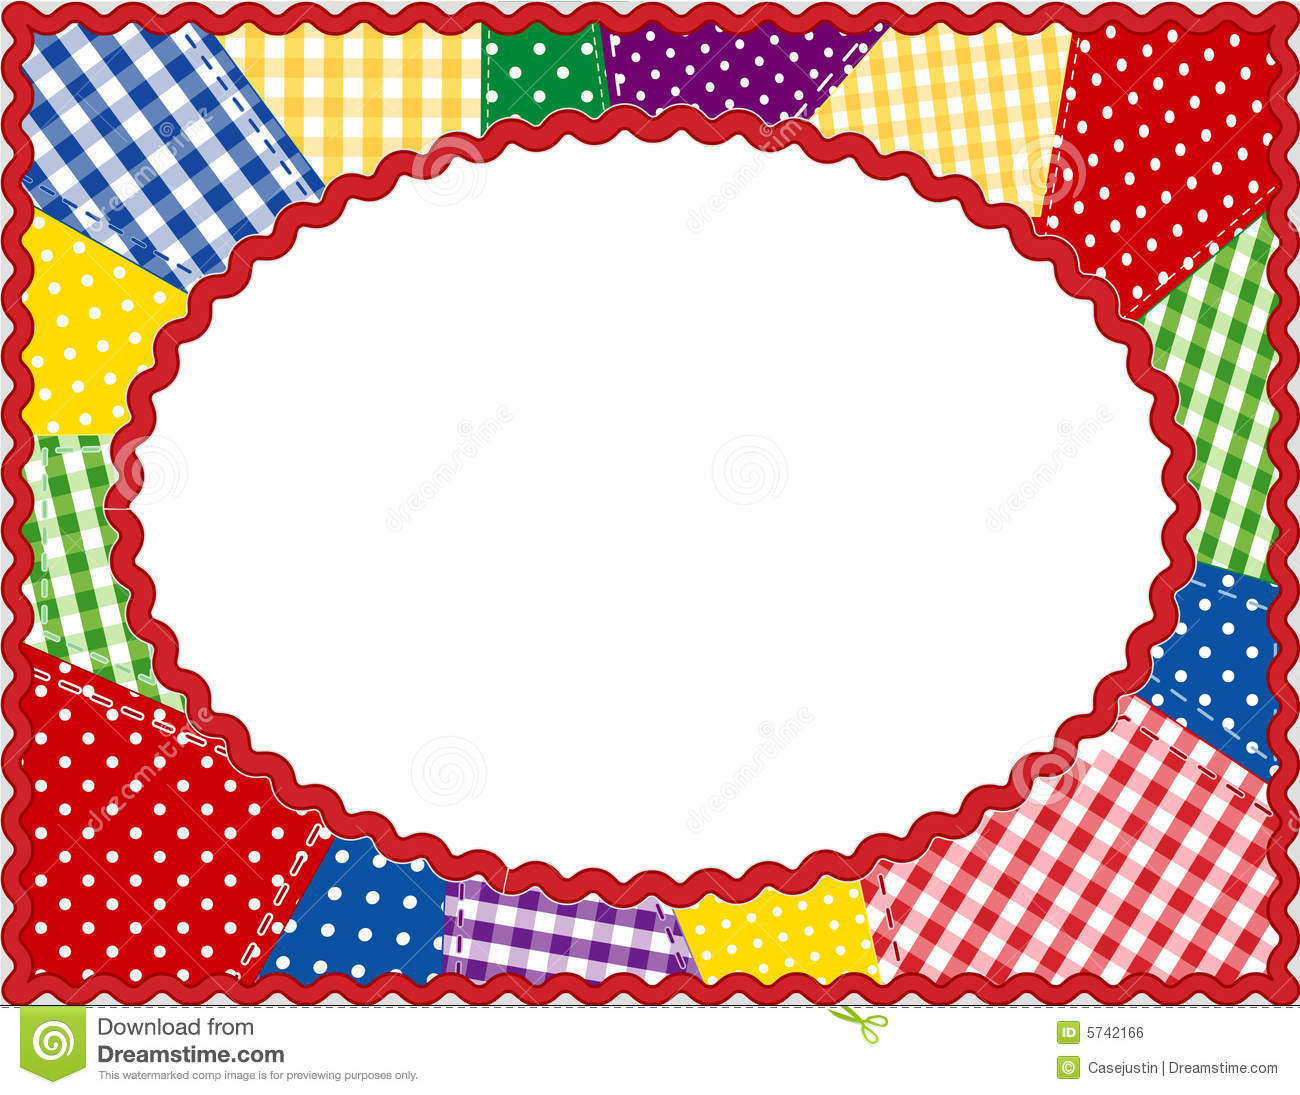 Patchwork Oval Frame Brights Royalty Free Stock Image